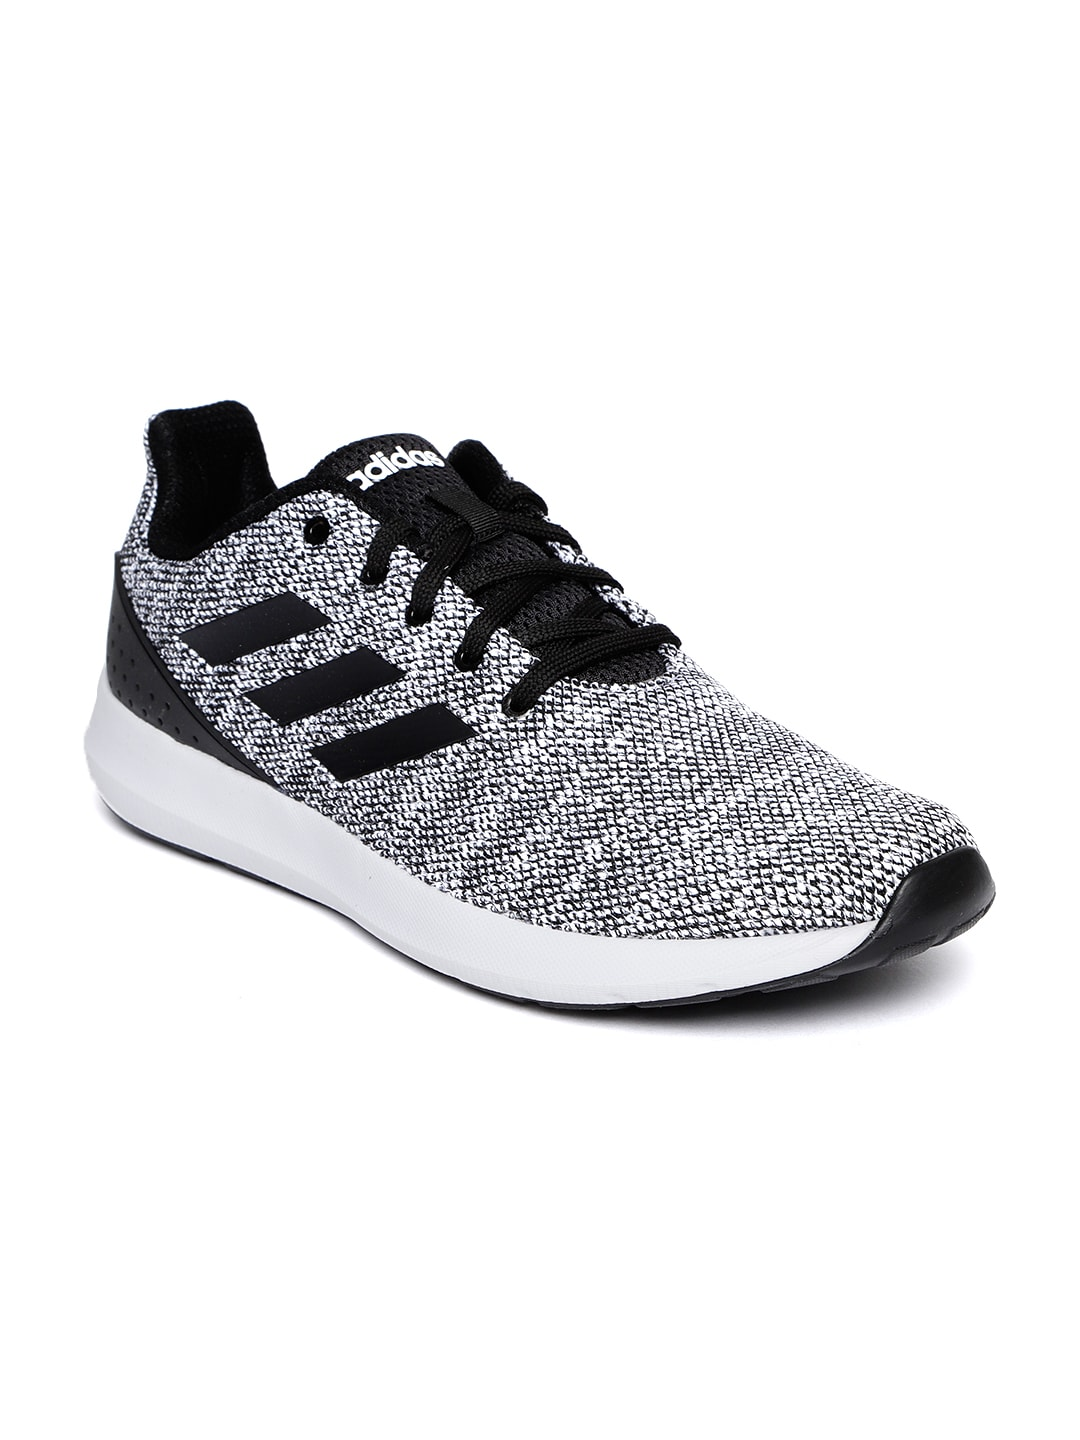 43e9ac5d202a8c Adidas Shoes - Buy Adidas Shoes for Men   Women Online - Myntra